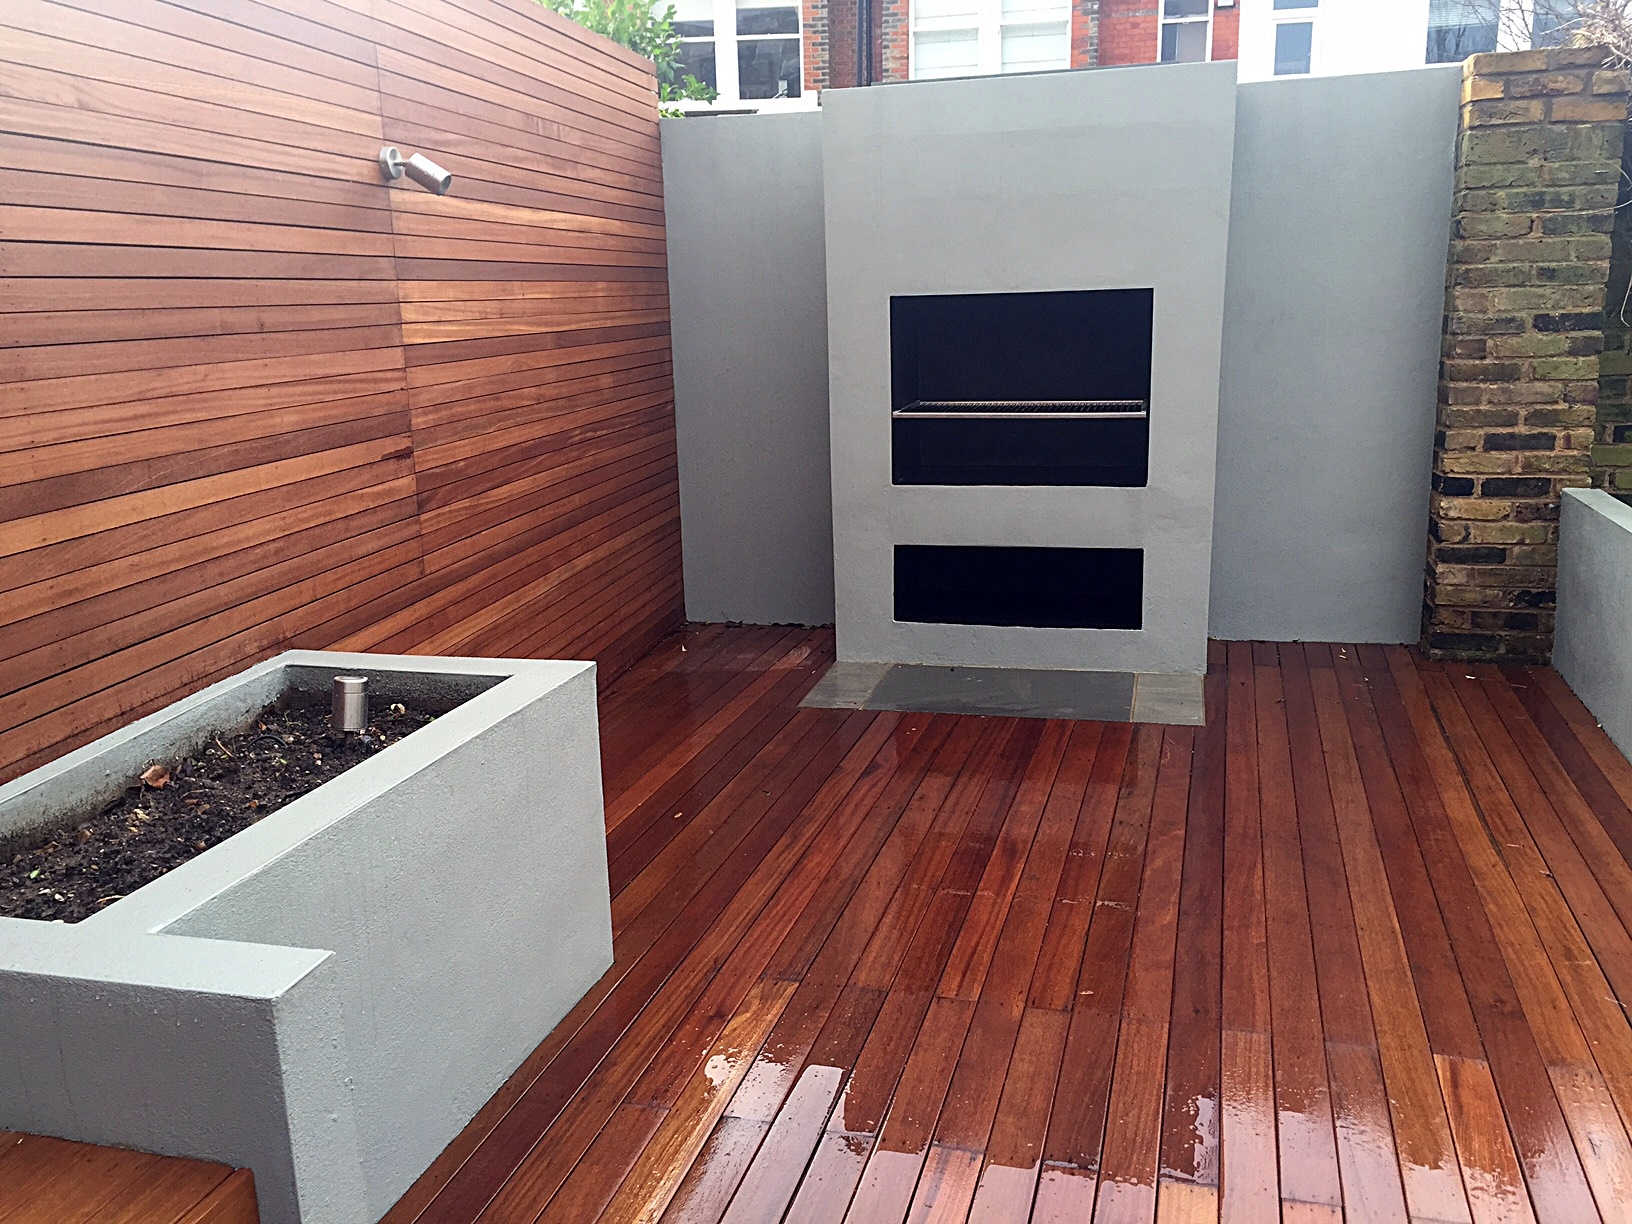 Raised beds hardwood trellis bbq fireplace gray colour brick wall London Battersea Chelsea Putney